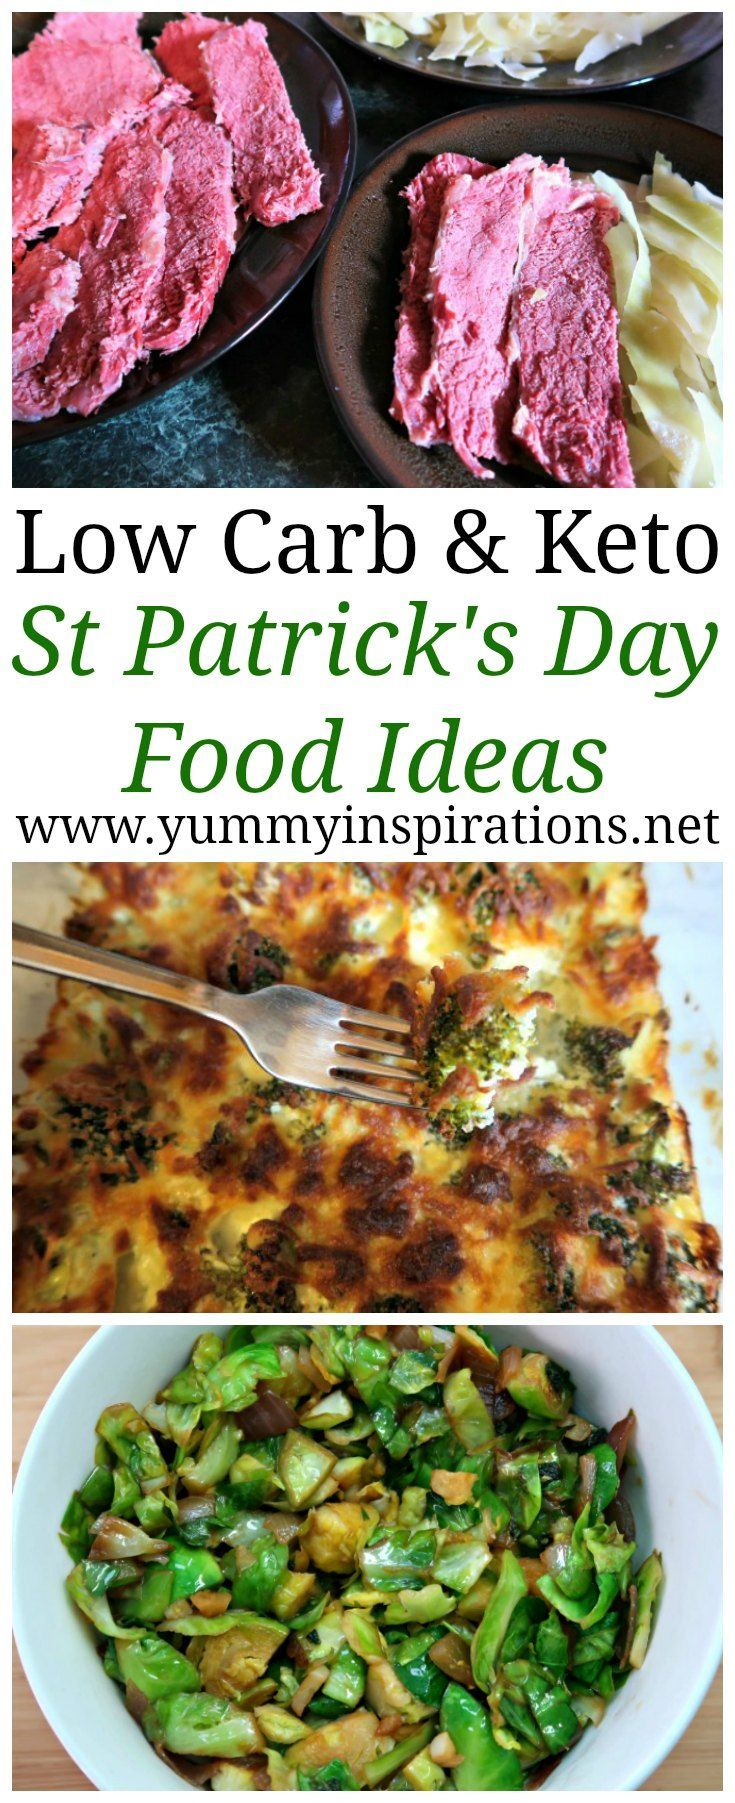 Low carb st patricks day food ideas including breakfasts low carb st patricks day food ideas including breakfasts desserts and dinners that are authentic irish and keto diet friendly including tradit forumfinder Gallery